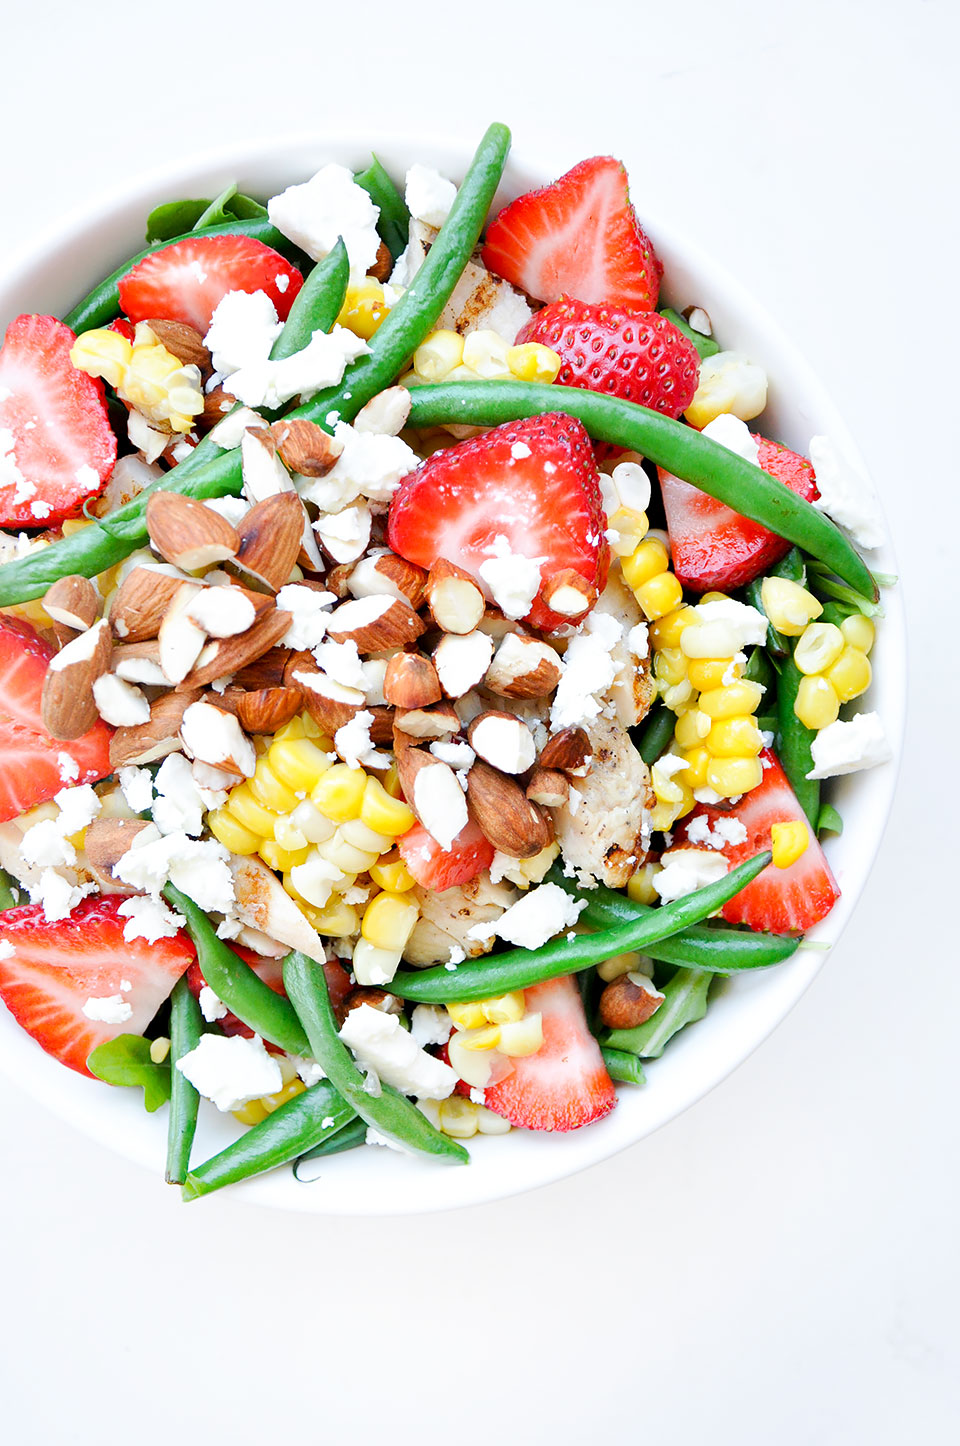 STRAWBERRY FETA BOWLS WITH ROASTED ALMONDS | Strawberry feta bowls with roasted almonds and balsamic vinaigrette: a gluten-free summer favorite that's easy to meal prep. Made with fresh corn, strawberries, green beans, and topped with crunchy almonds and creamy feta. | LOVELEAF CO. #mealprep #strawberries #bowls #salad #saladrecipes #summer #strawberry #feta #almonds #easyrecipe #mealprepping #saladrecipe #bowl